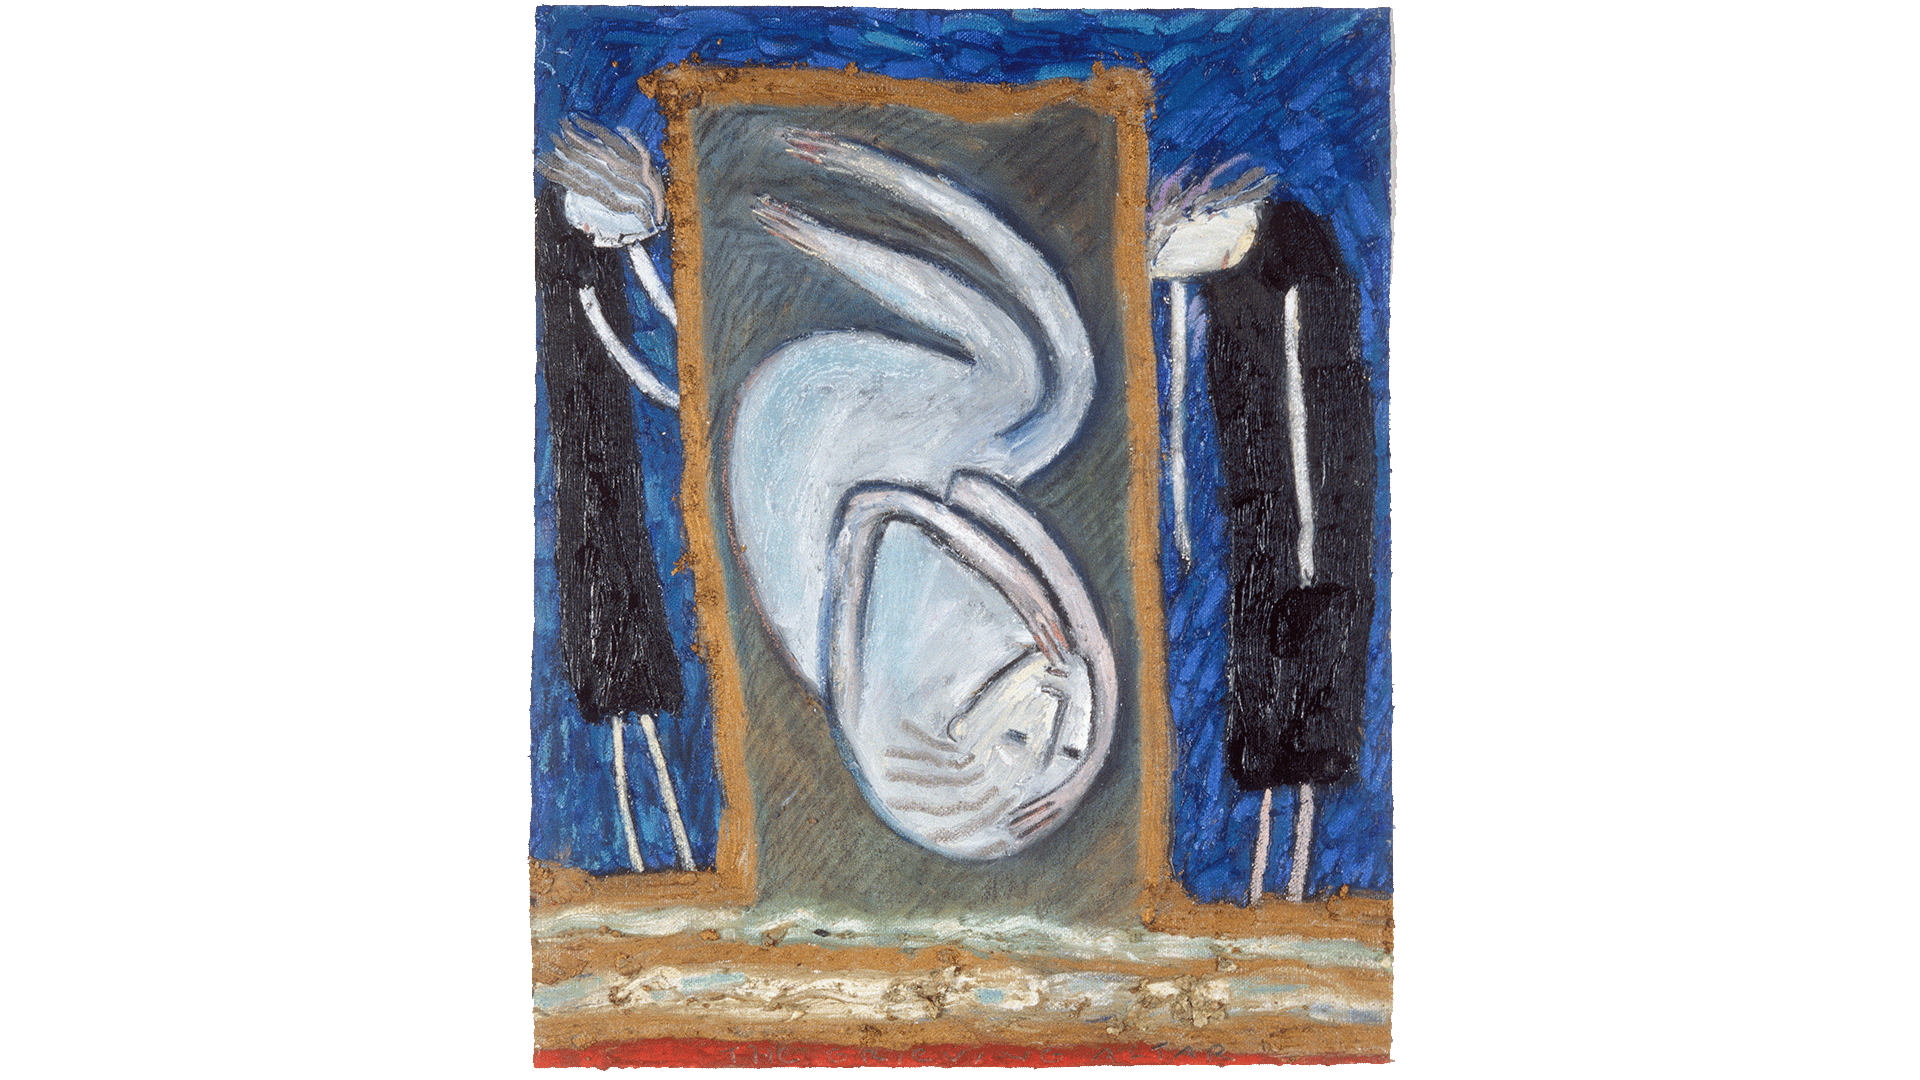 virginiahalstead.com/Paintings/The-grieving-altar.png